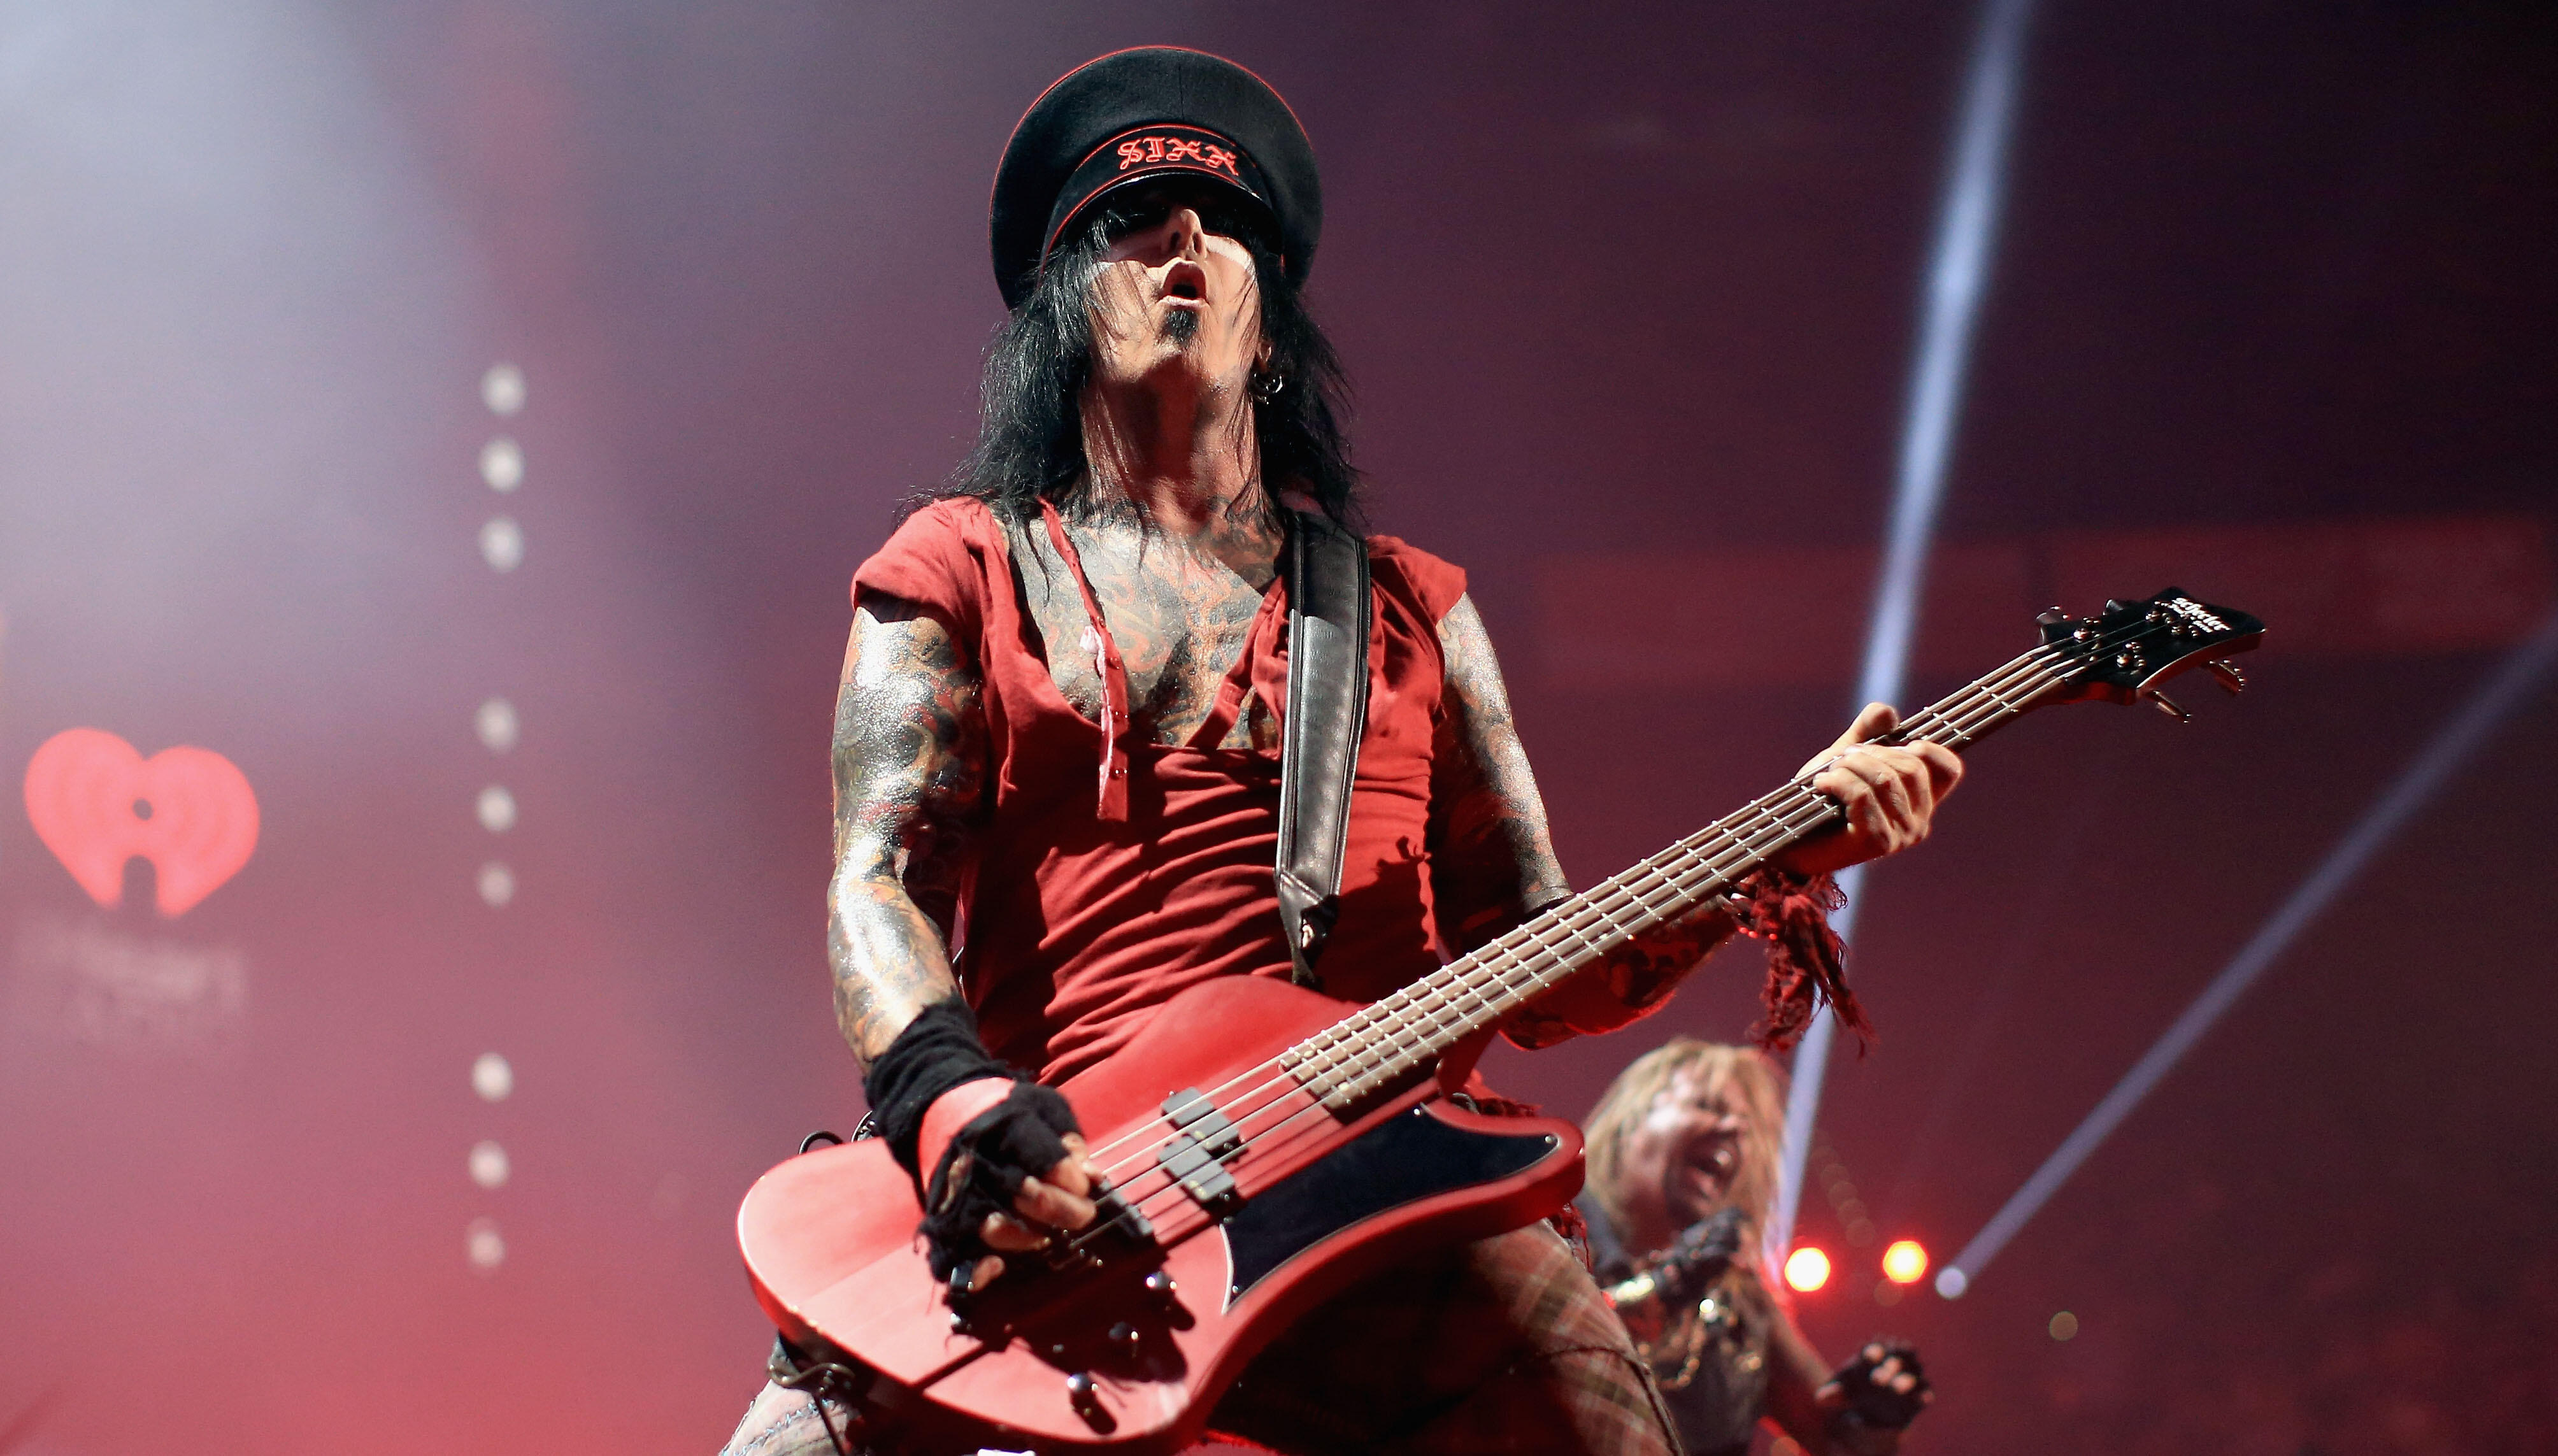 Nikki Sixx Shuts Down $20,000 Auction Of Shirt He Purportedly Wore Onstage